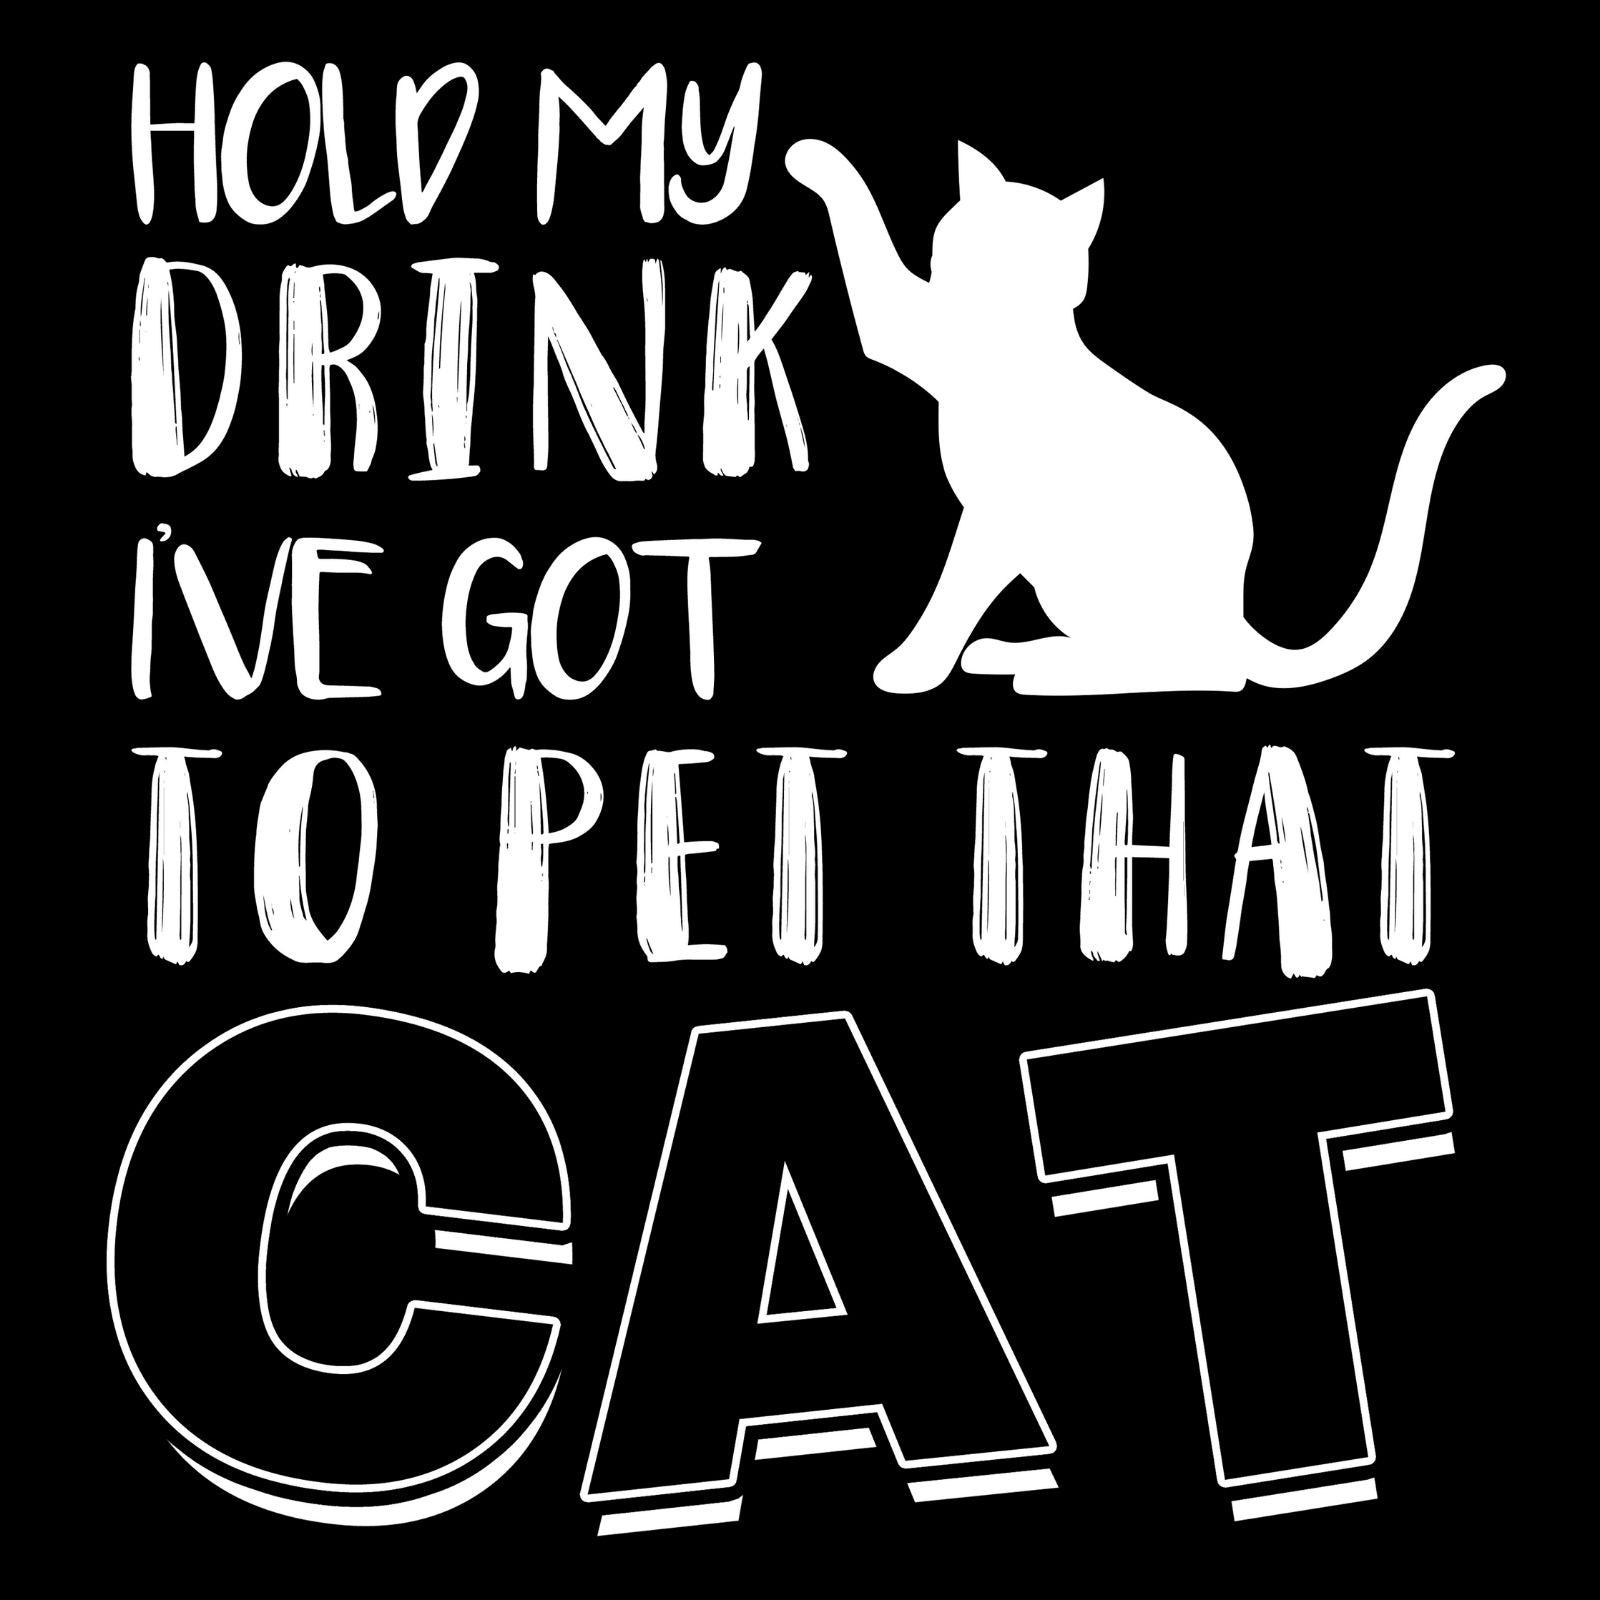 Hold My Drink I've Got To Pet That Cat - Bastard Graphics